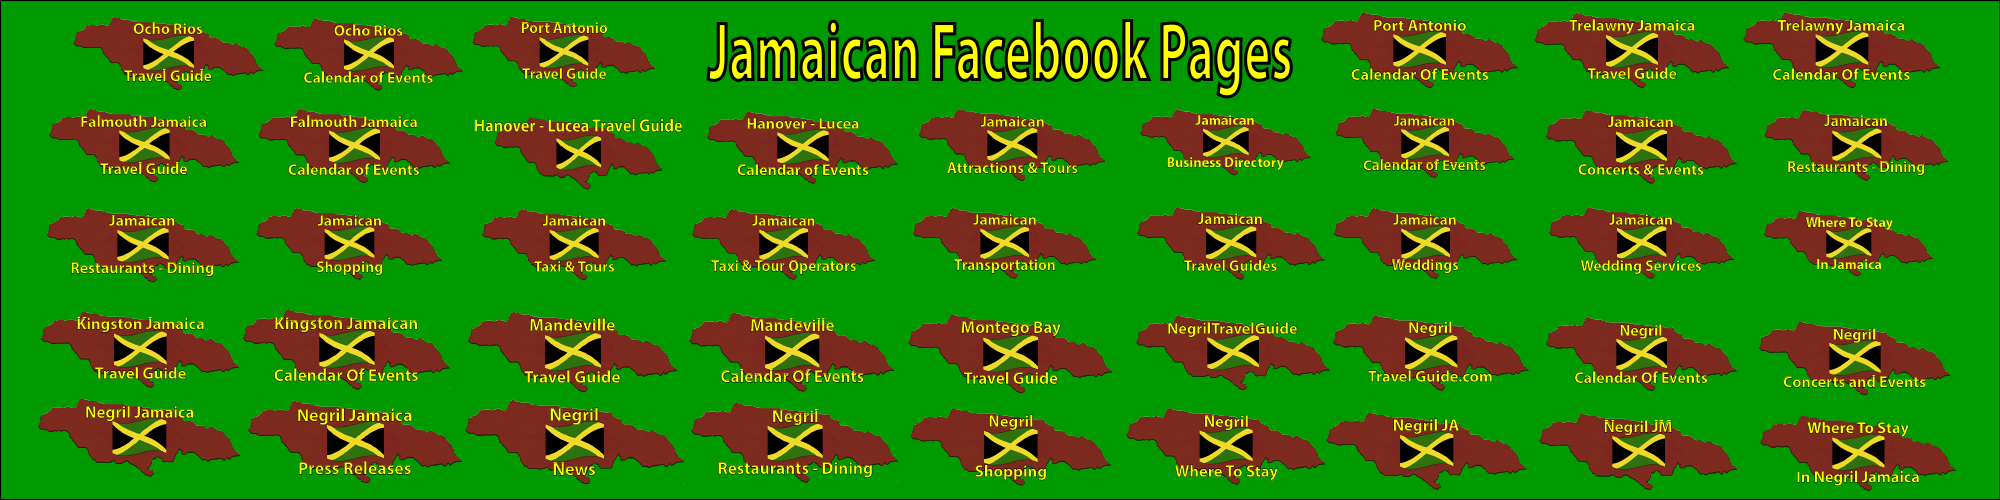 Jamaican Facebook Pagess